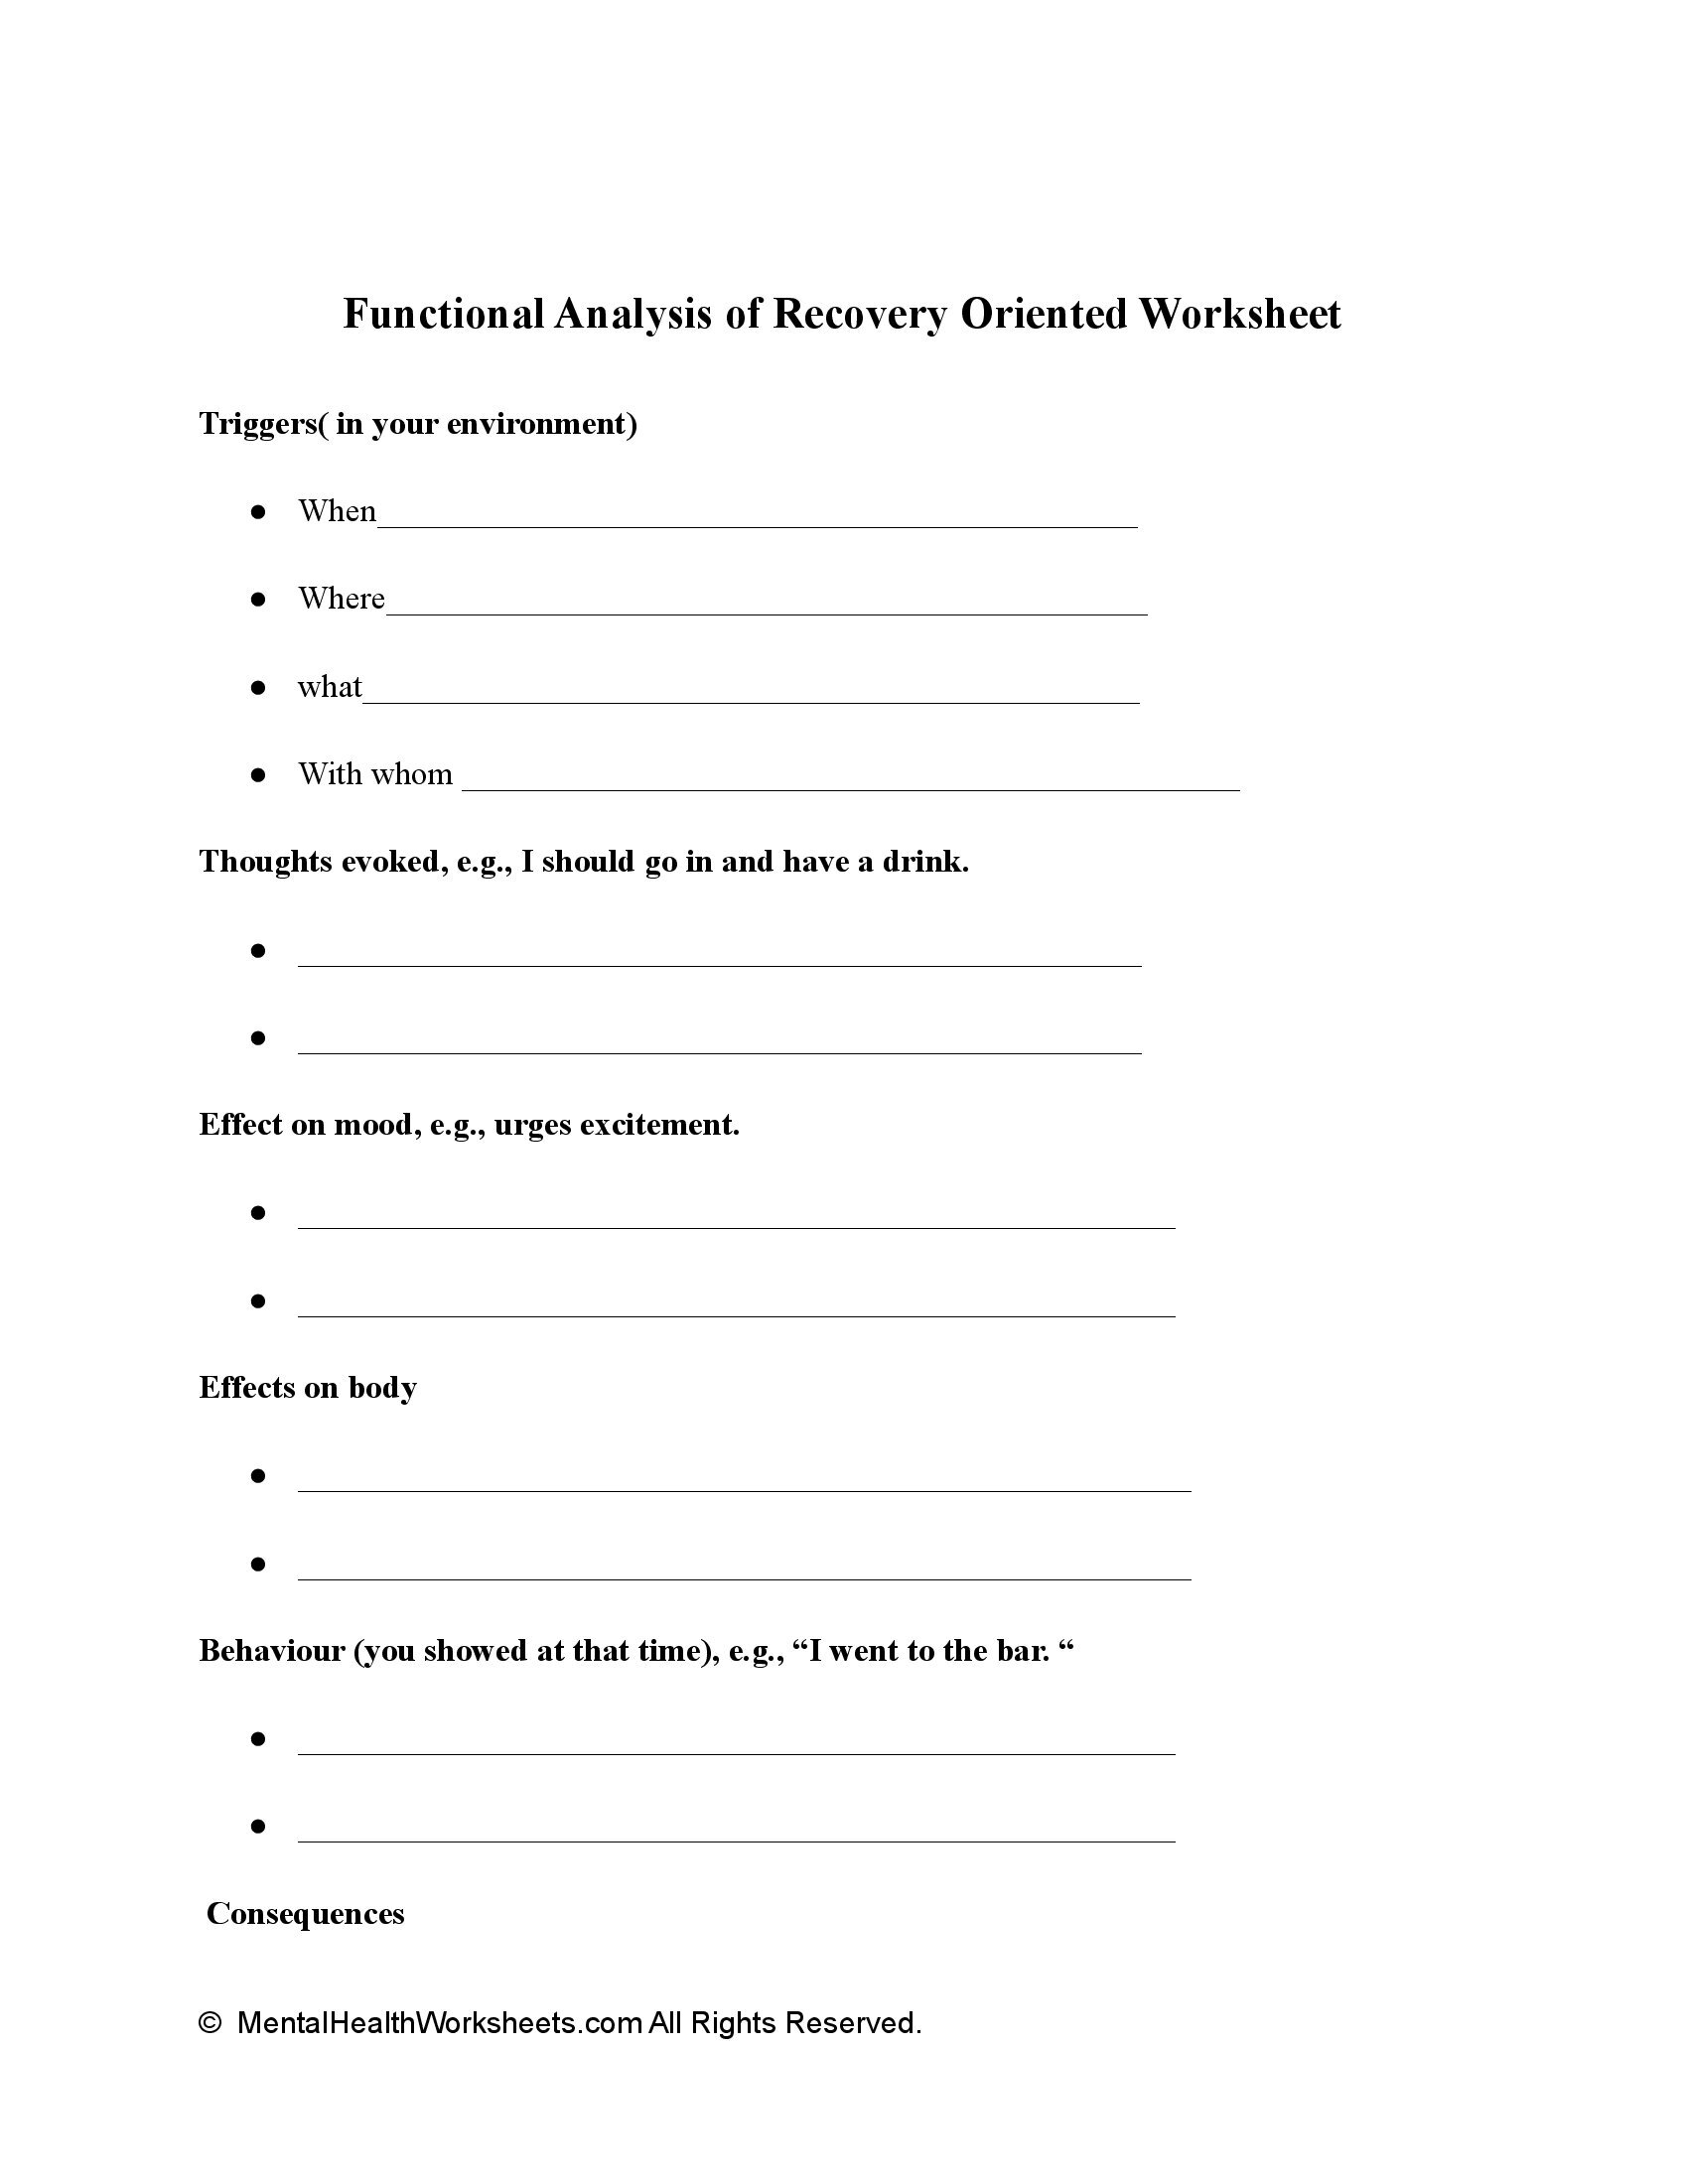 Functional Analysis of Recovery Oriented Worksheet